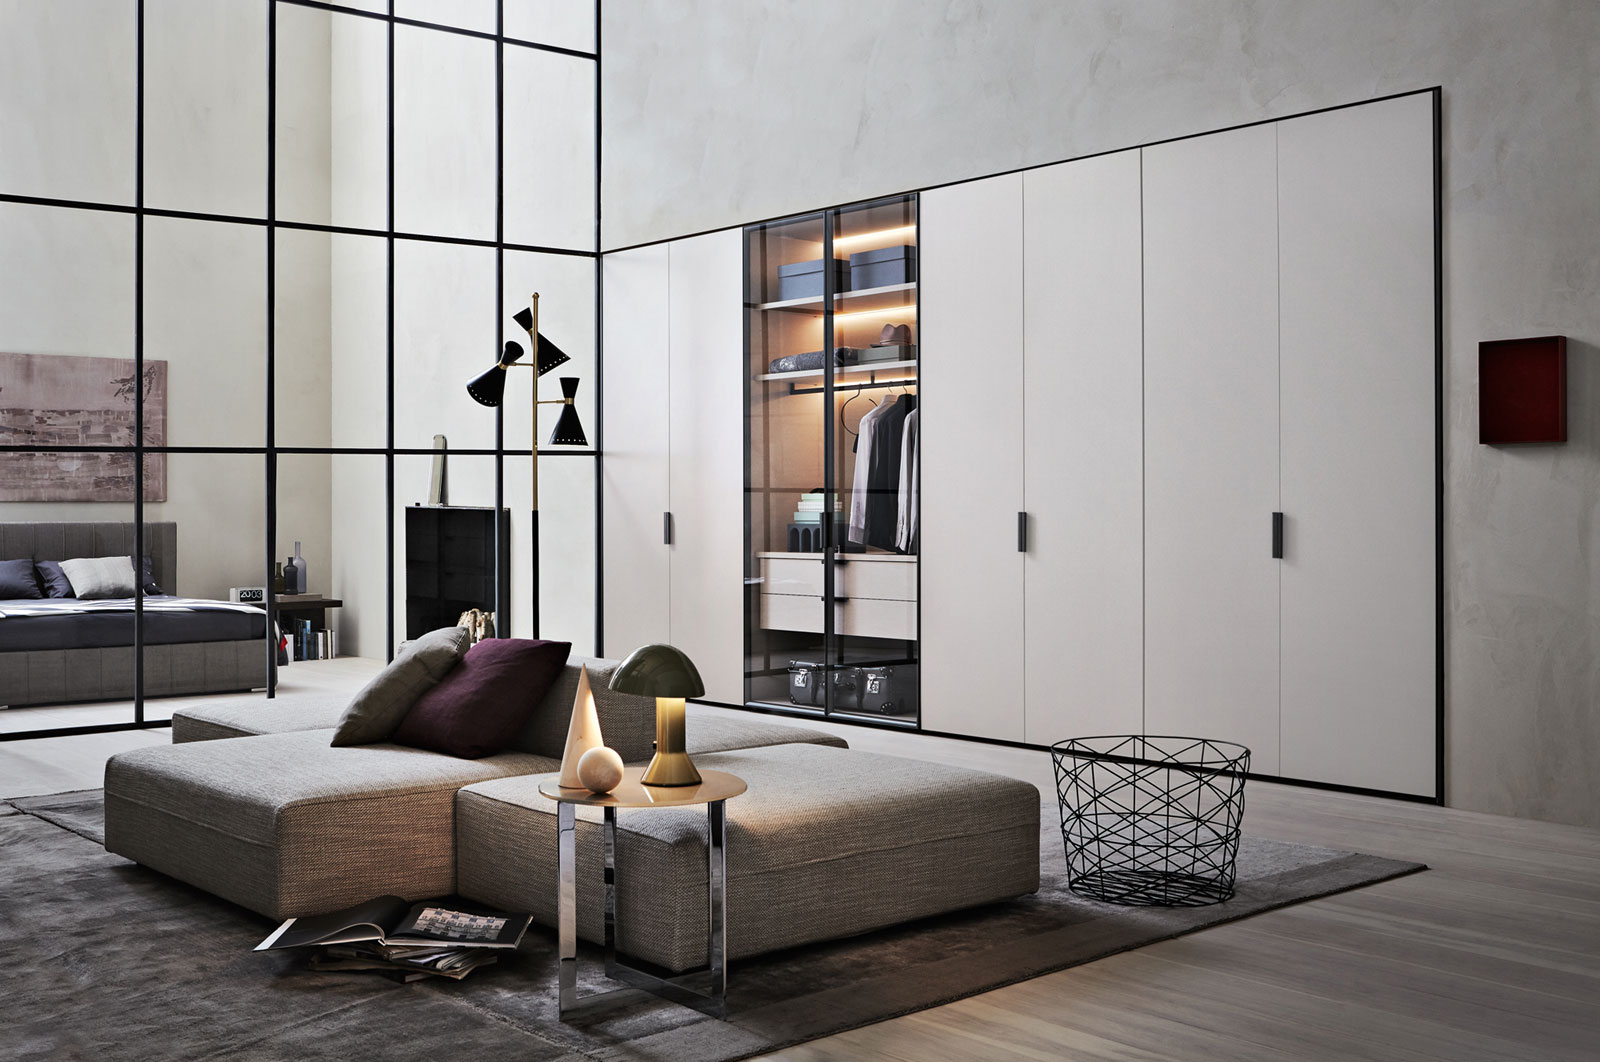 molteni c gliss master grip hinged door wardrobe buy from campbell watson uk. Black Bedroom Furniture Sets. Home Design Ideas